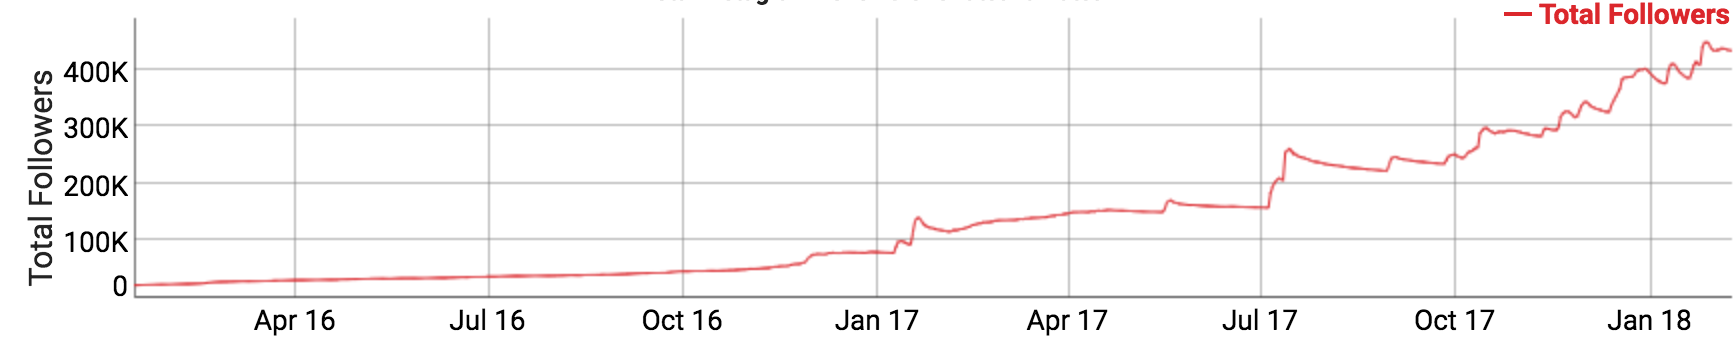 Example of a suspicious follower growth chart